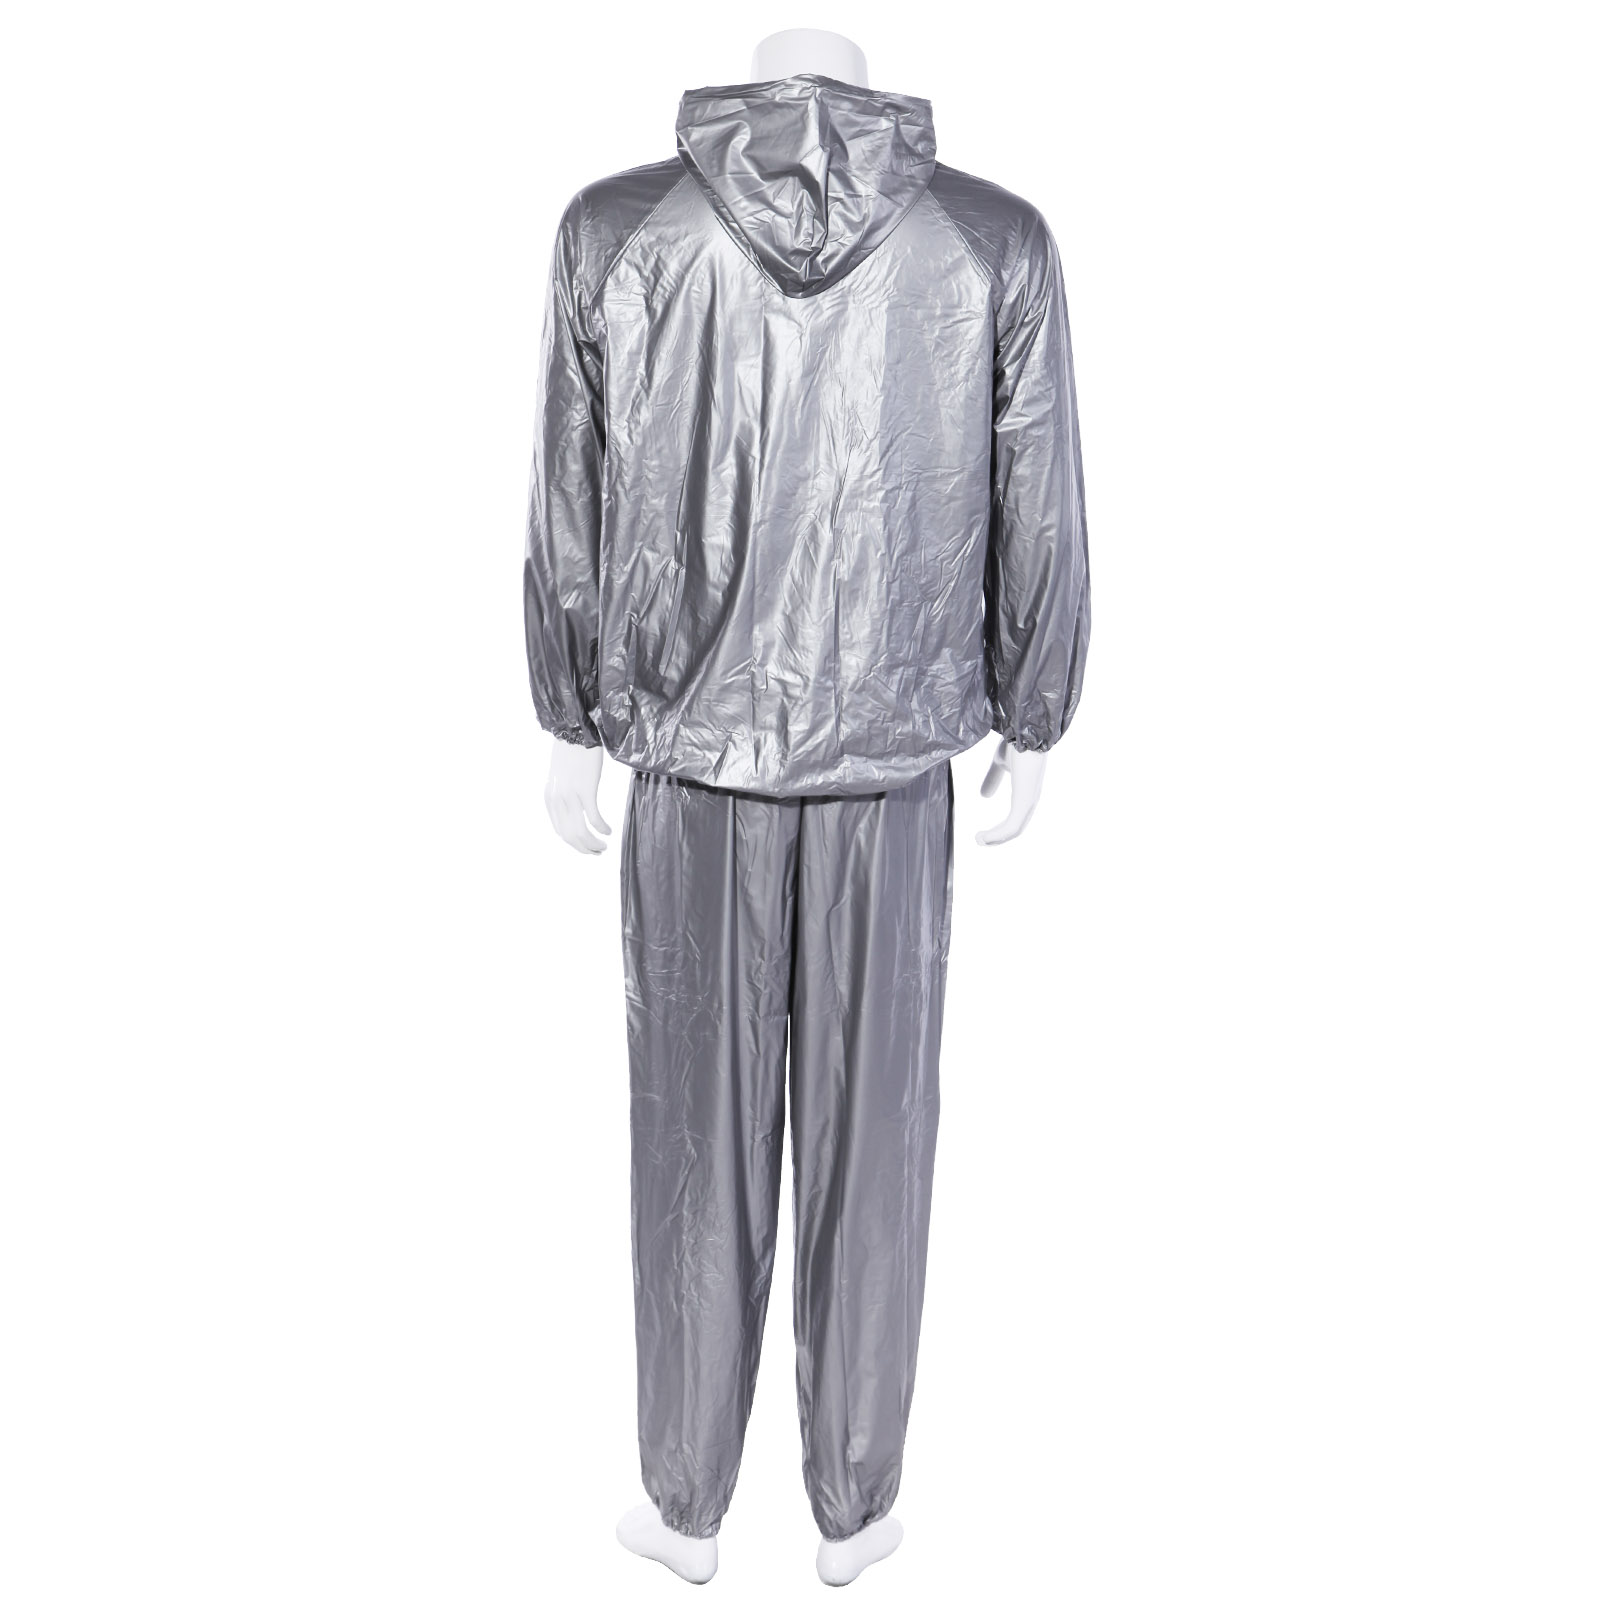 Silver Sauna Sweat Suit Hoodie Neck To Ankle For Weight